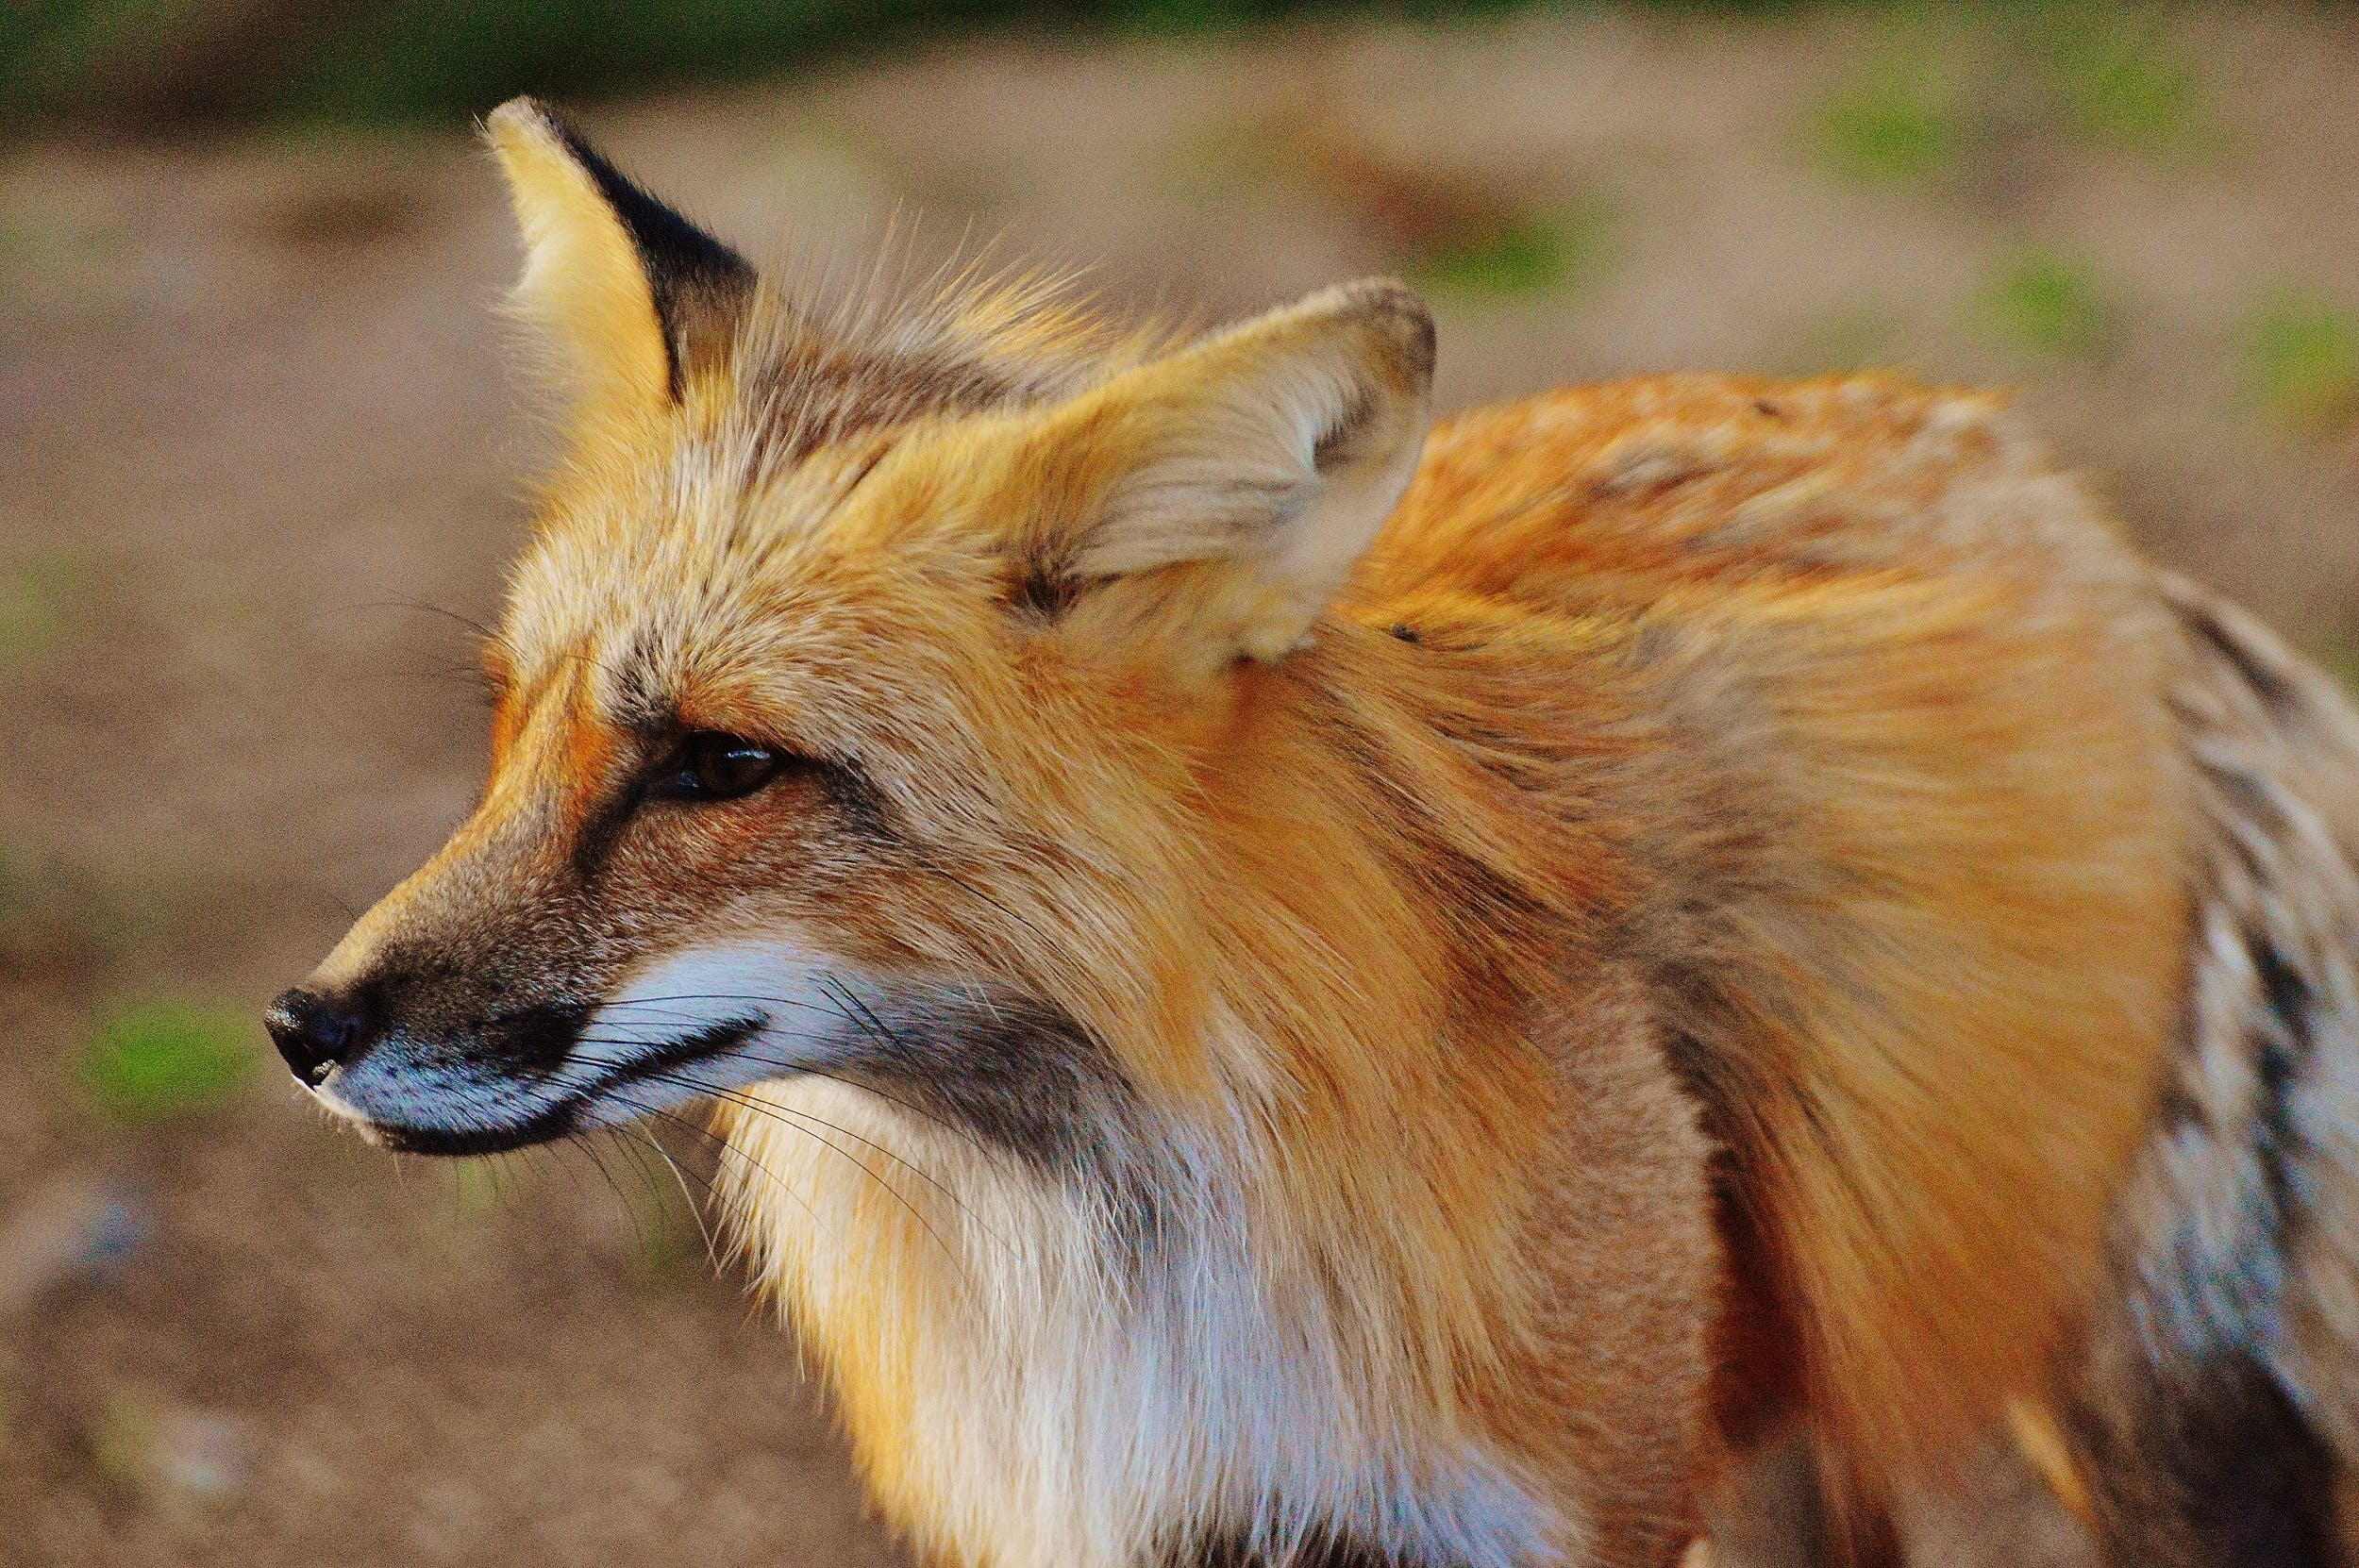 Close Up Photo of True Fox Animal at Daytime